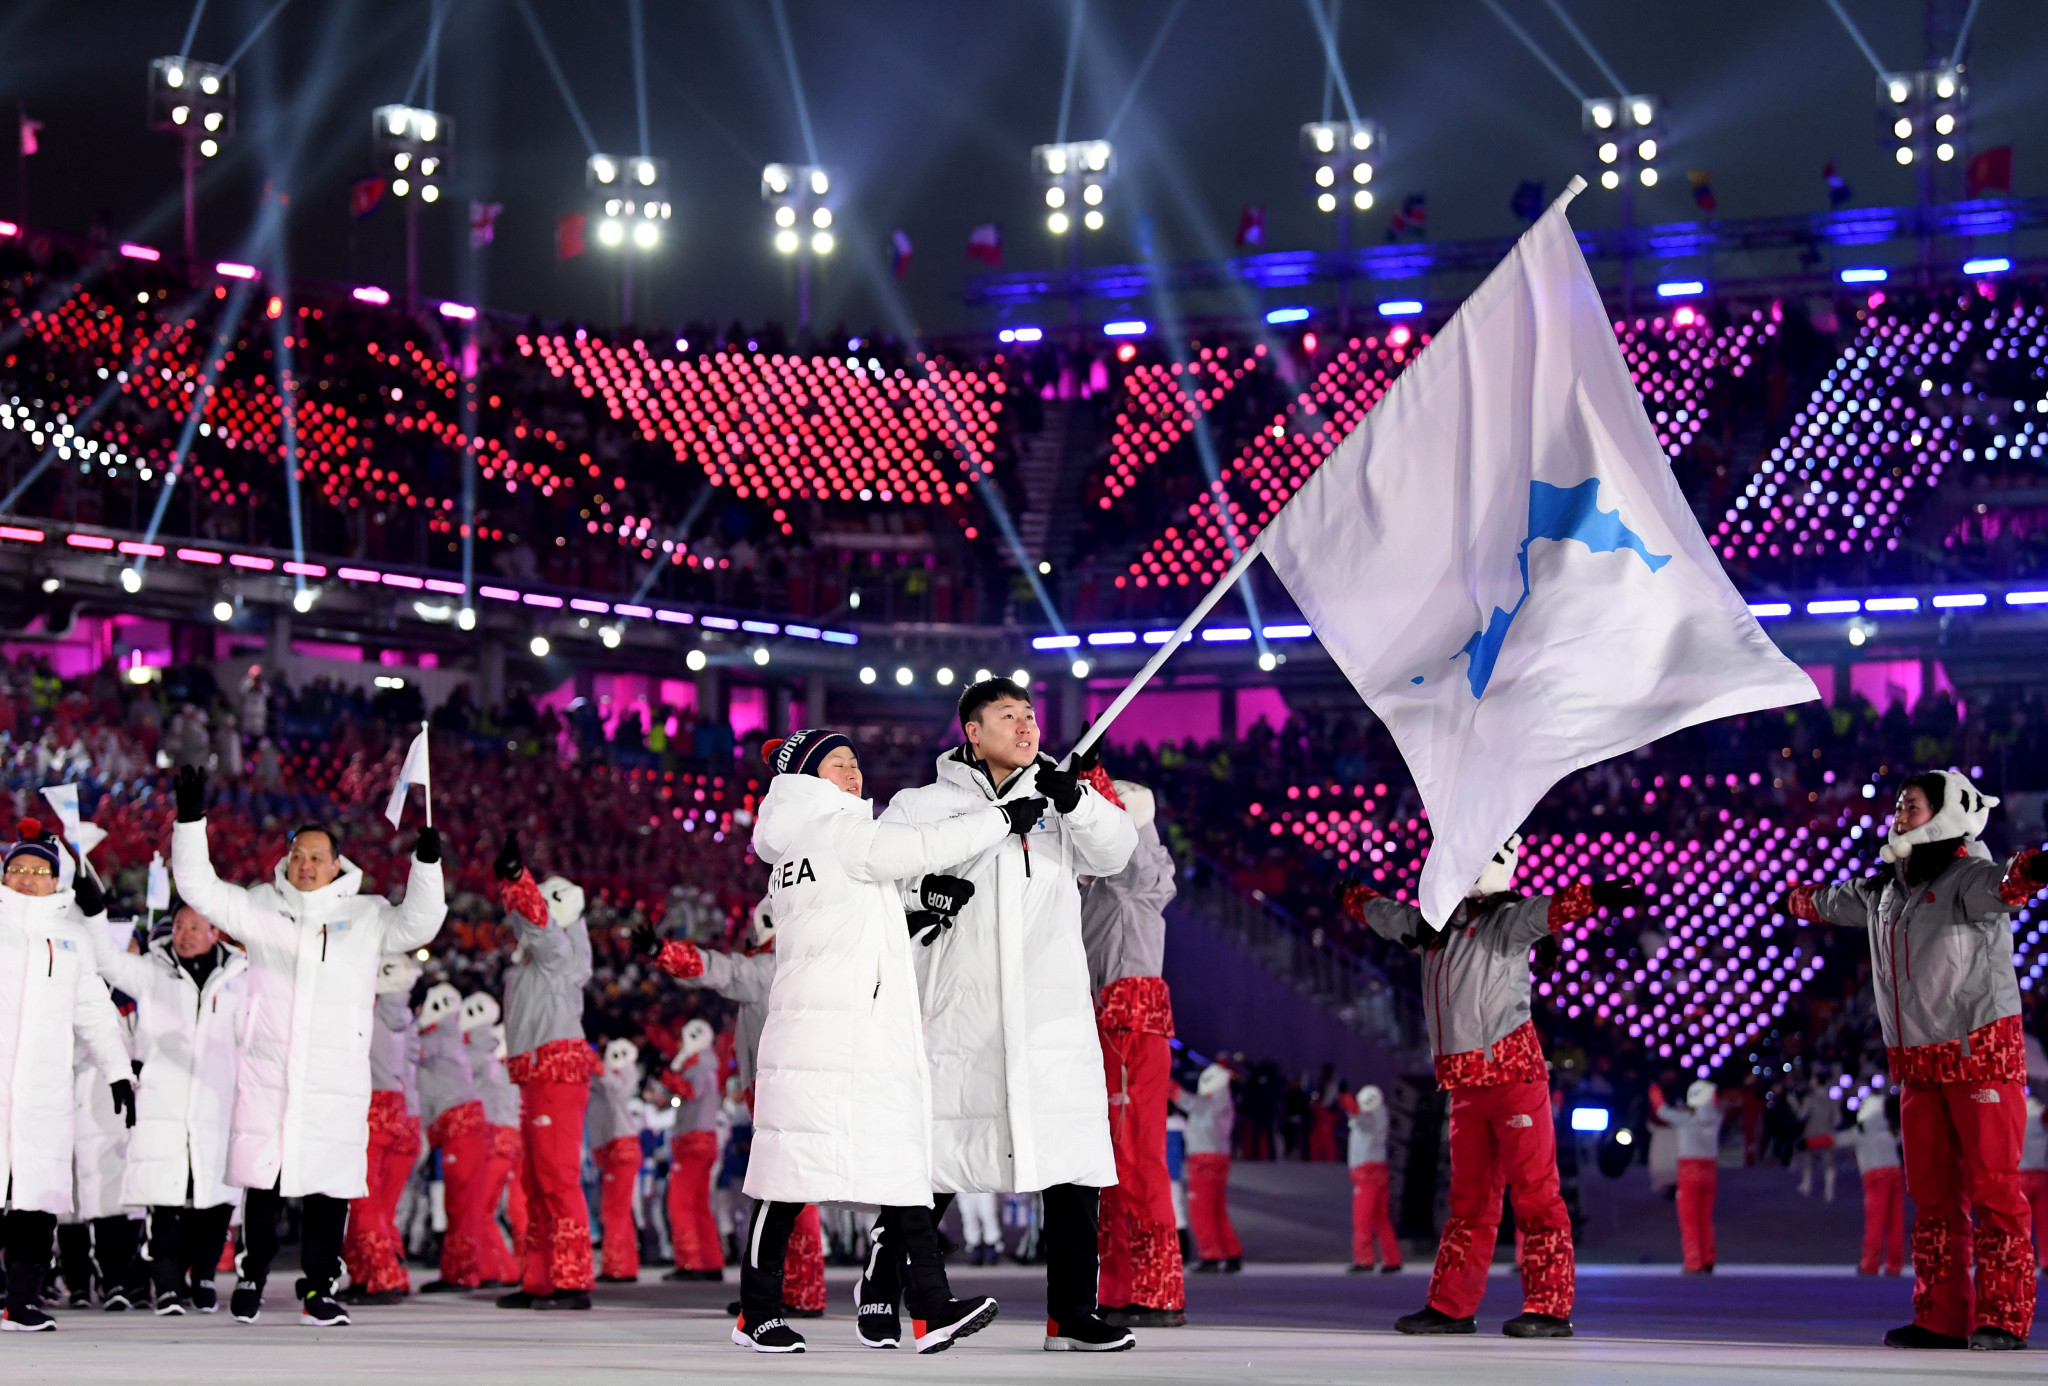 North and South Korea marched together under the unification flag at the Opening Ceremony of the Winter Olympic Games in Pyeongchang last month ©Getty Images